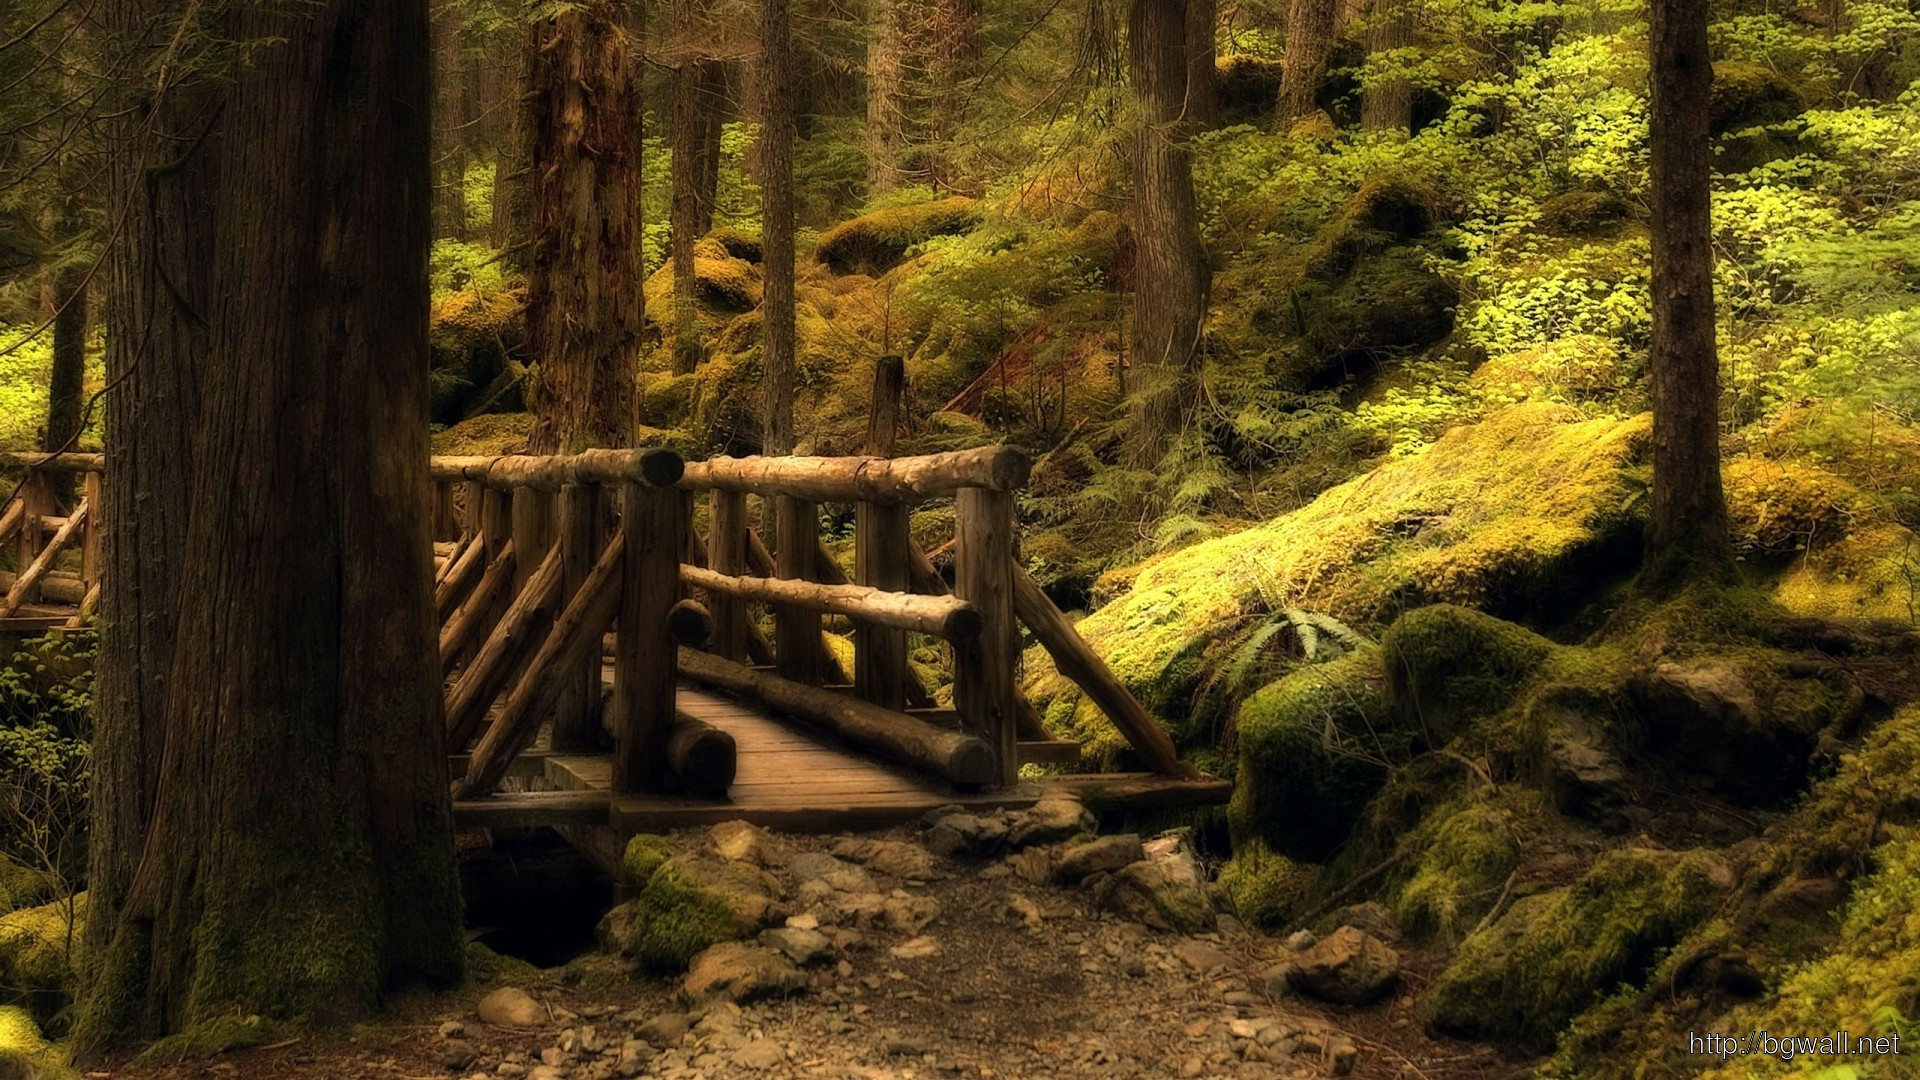 Small Wooden Bridge In The Forest Wallpaper 3362 Full Size